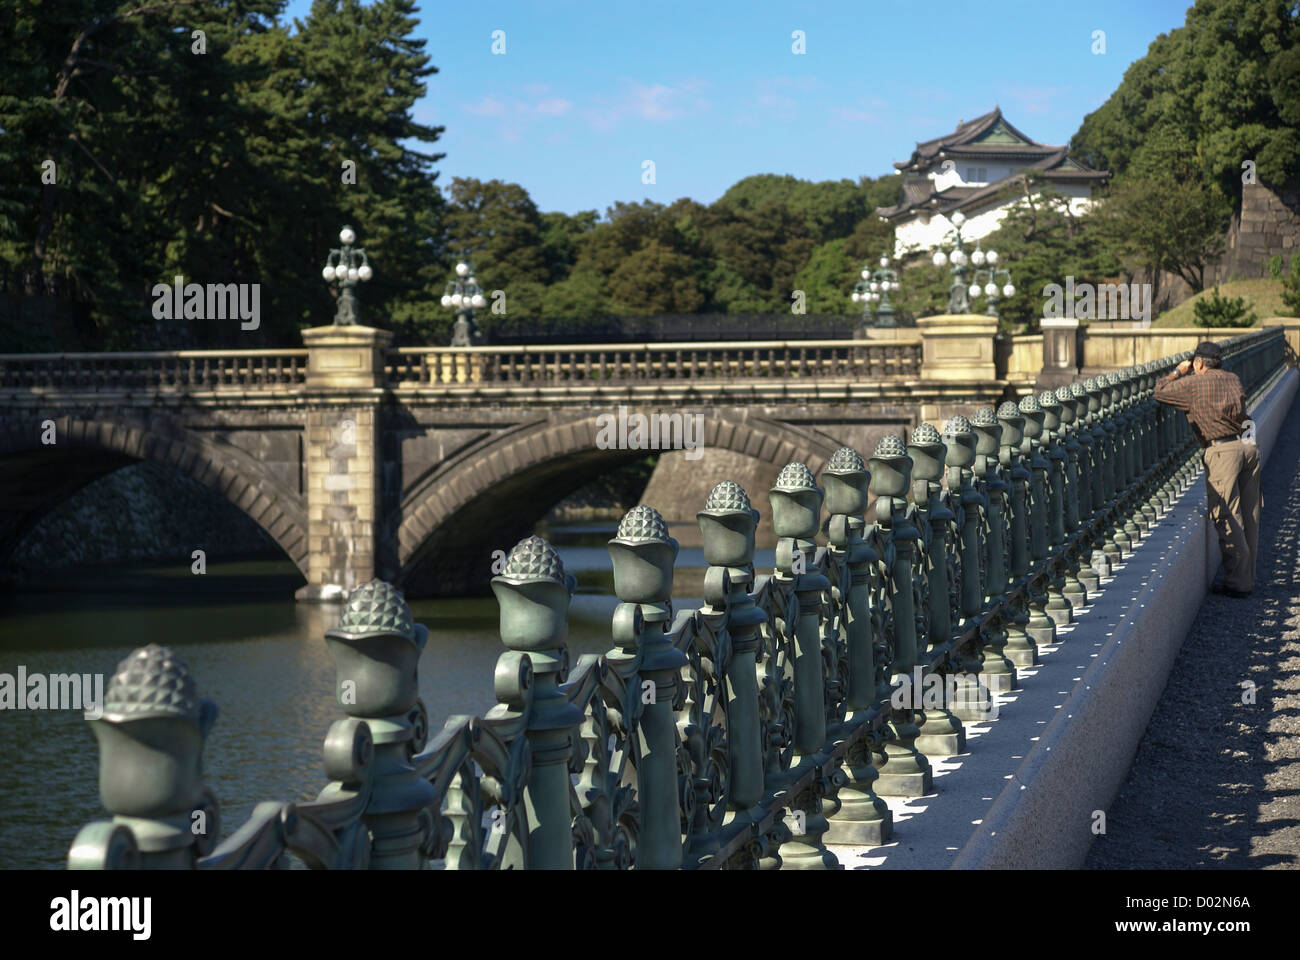 Japan, Tokyo View of Nijubashi bridge at Imperial Palace - Stock Image